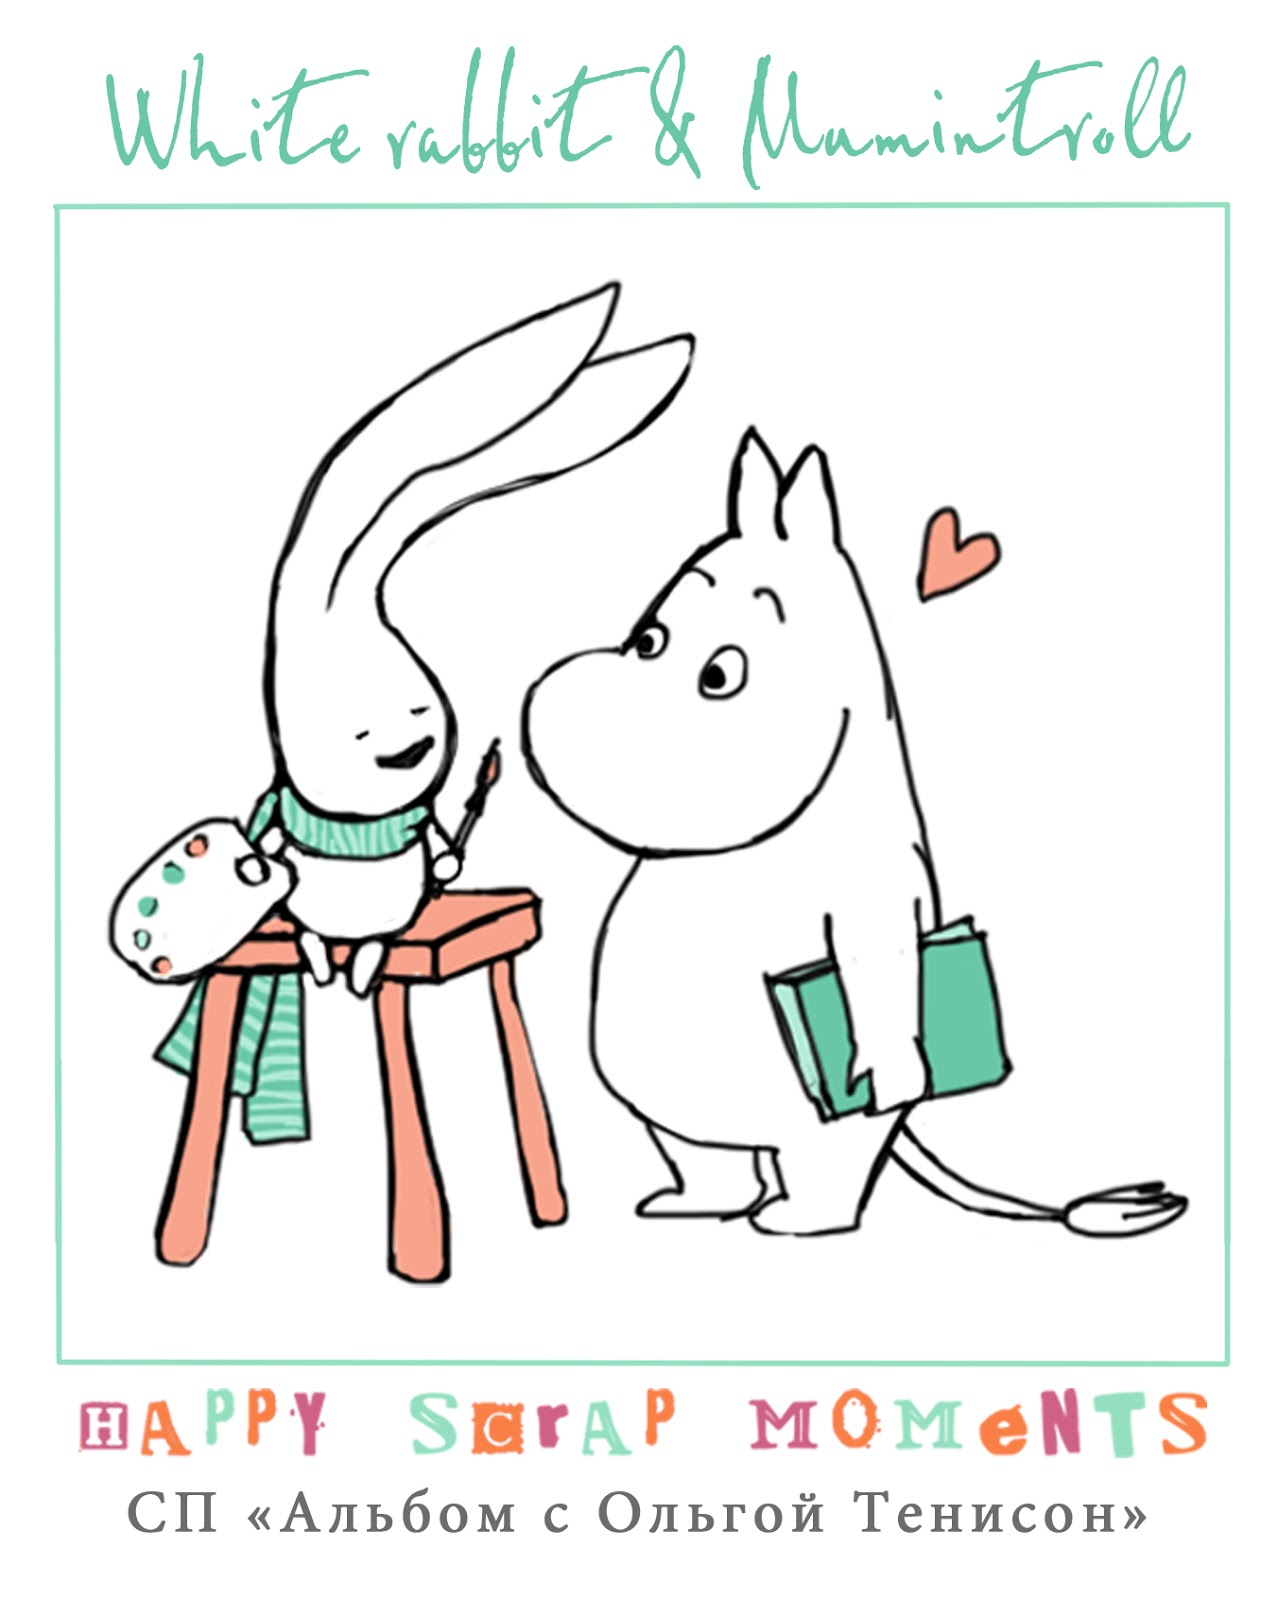 http://happyscrapmoments.blogspot.ru/2014/03/white-rabbit-2.html